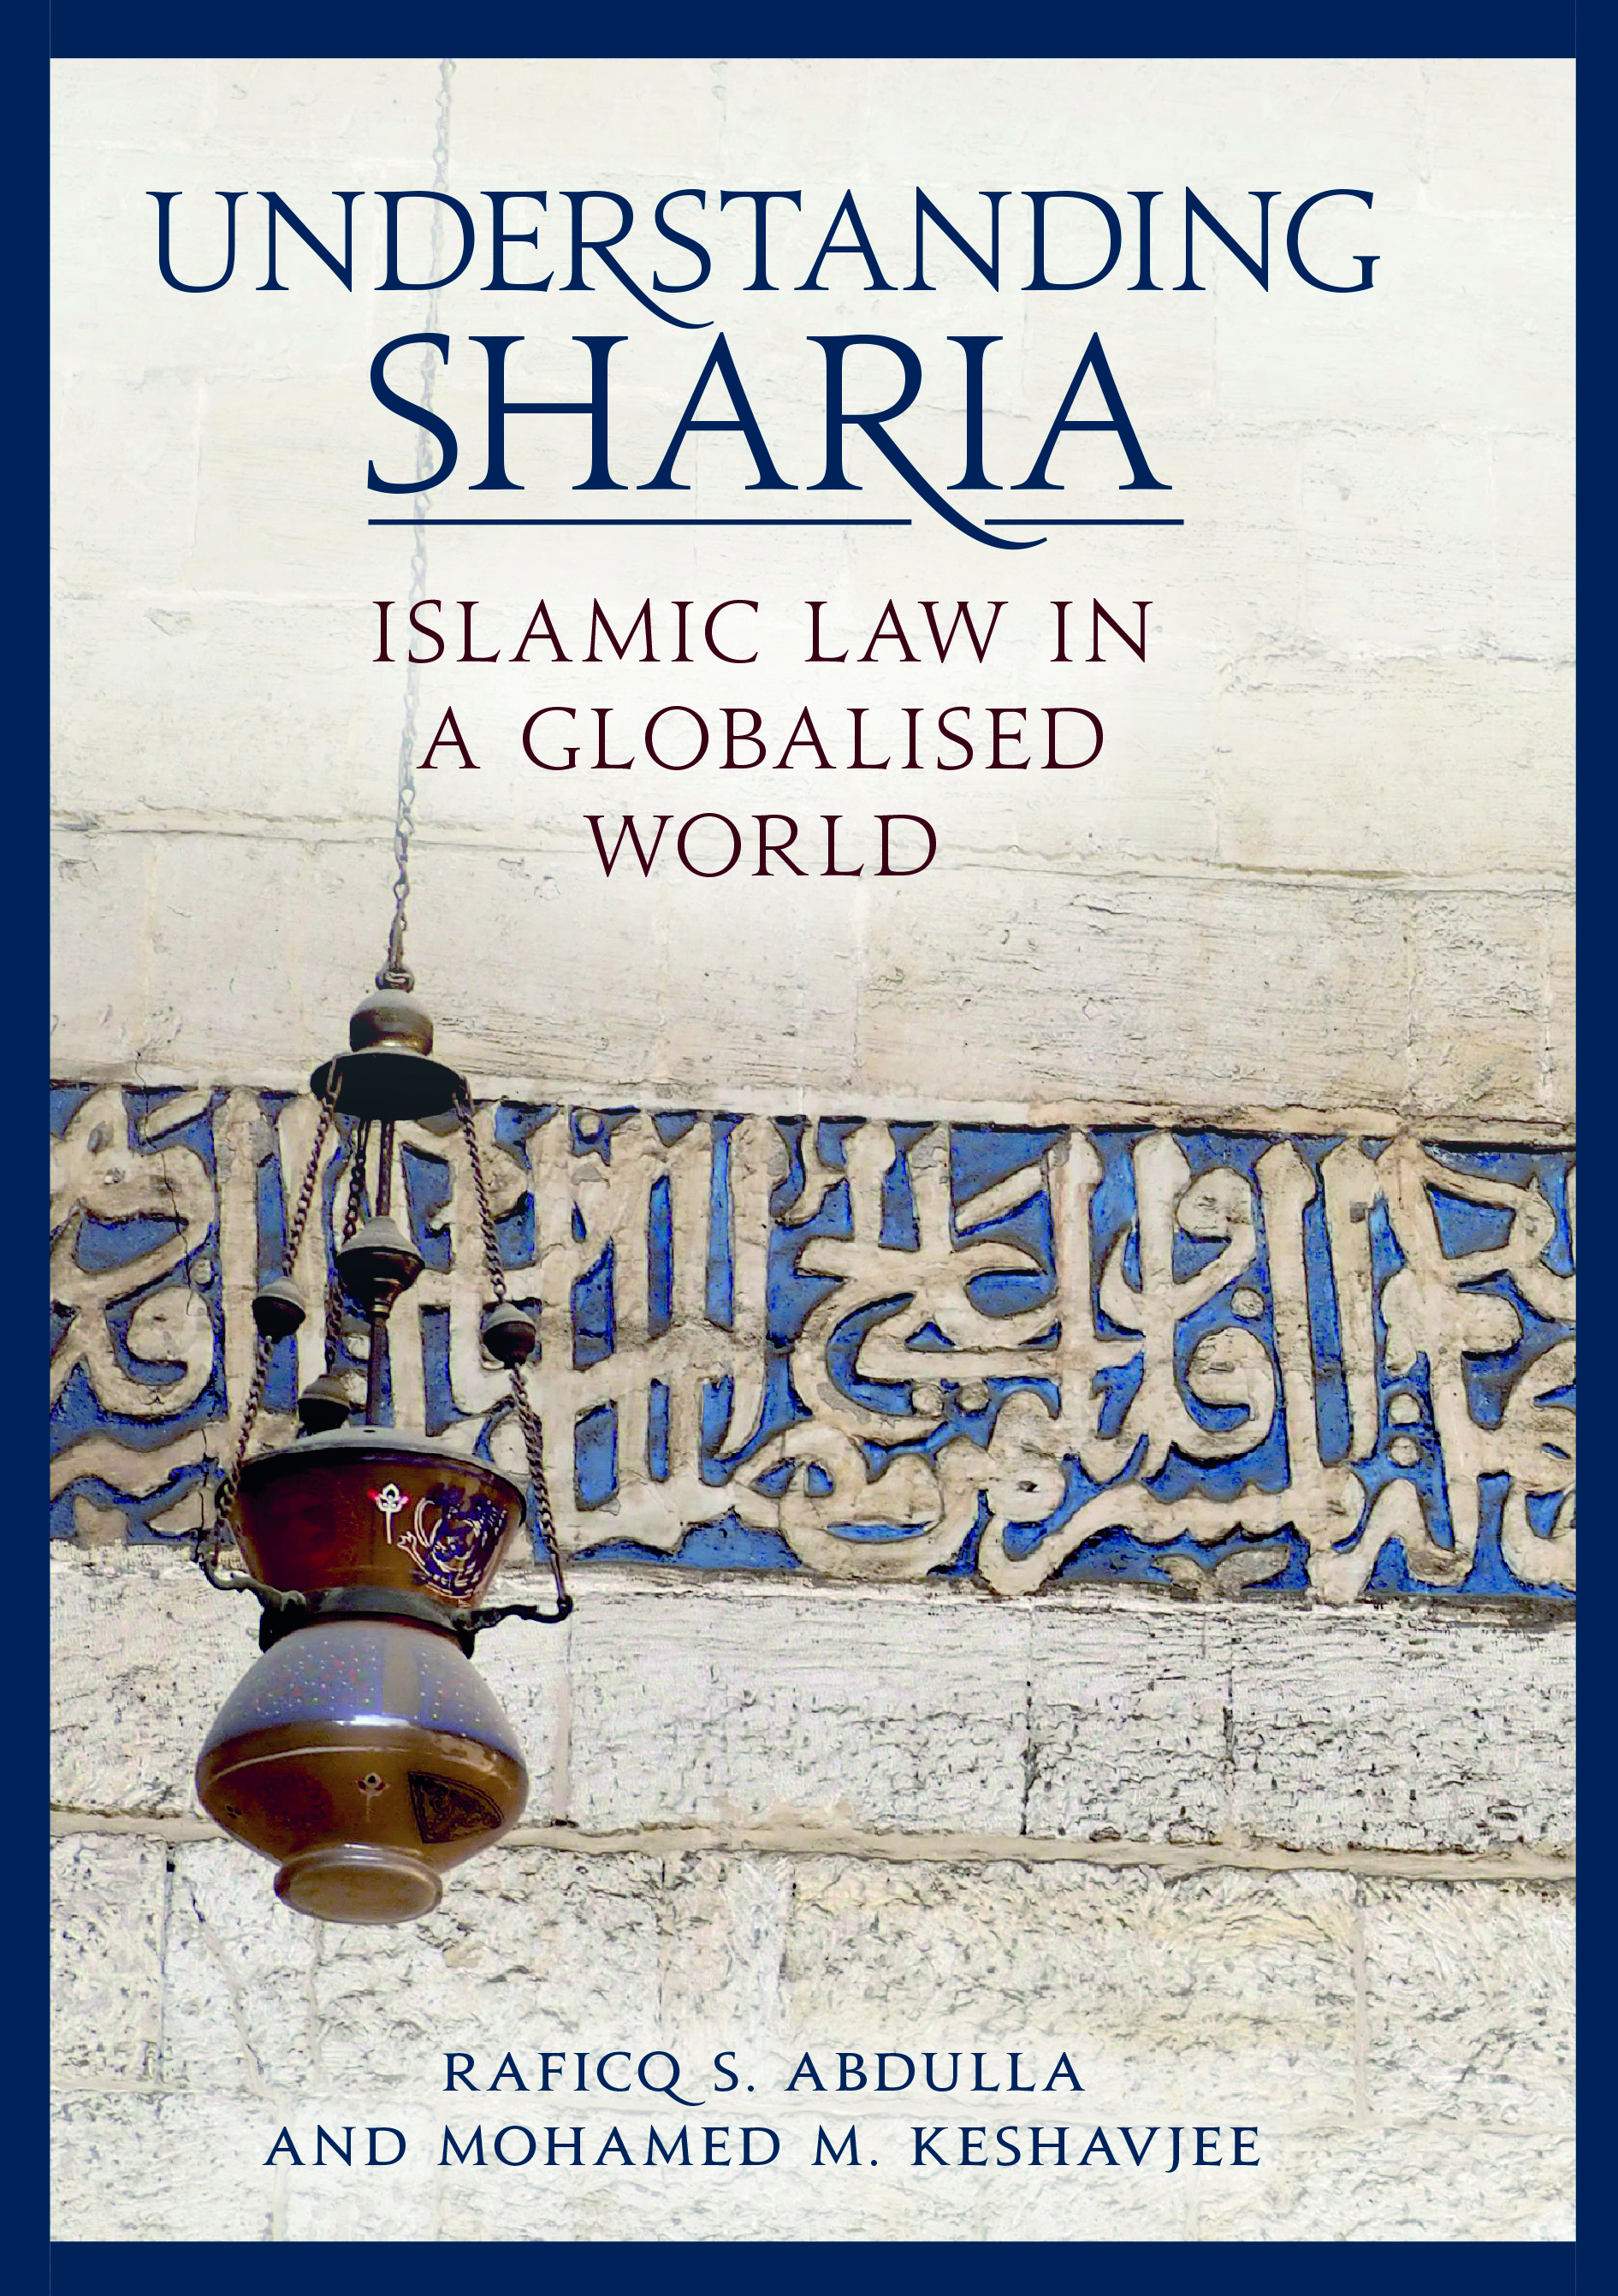 Understanding Sharia: Islamic law in a Globalised World by Raficq S. Abdulla and Mohamed M. Keshavjee